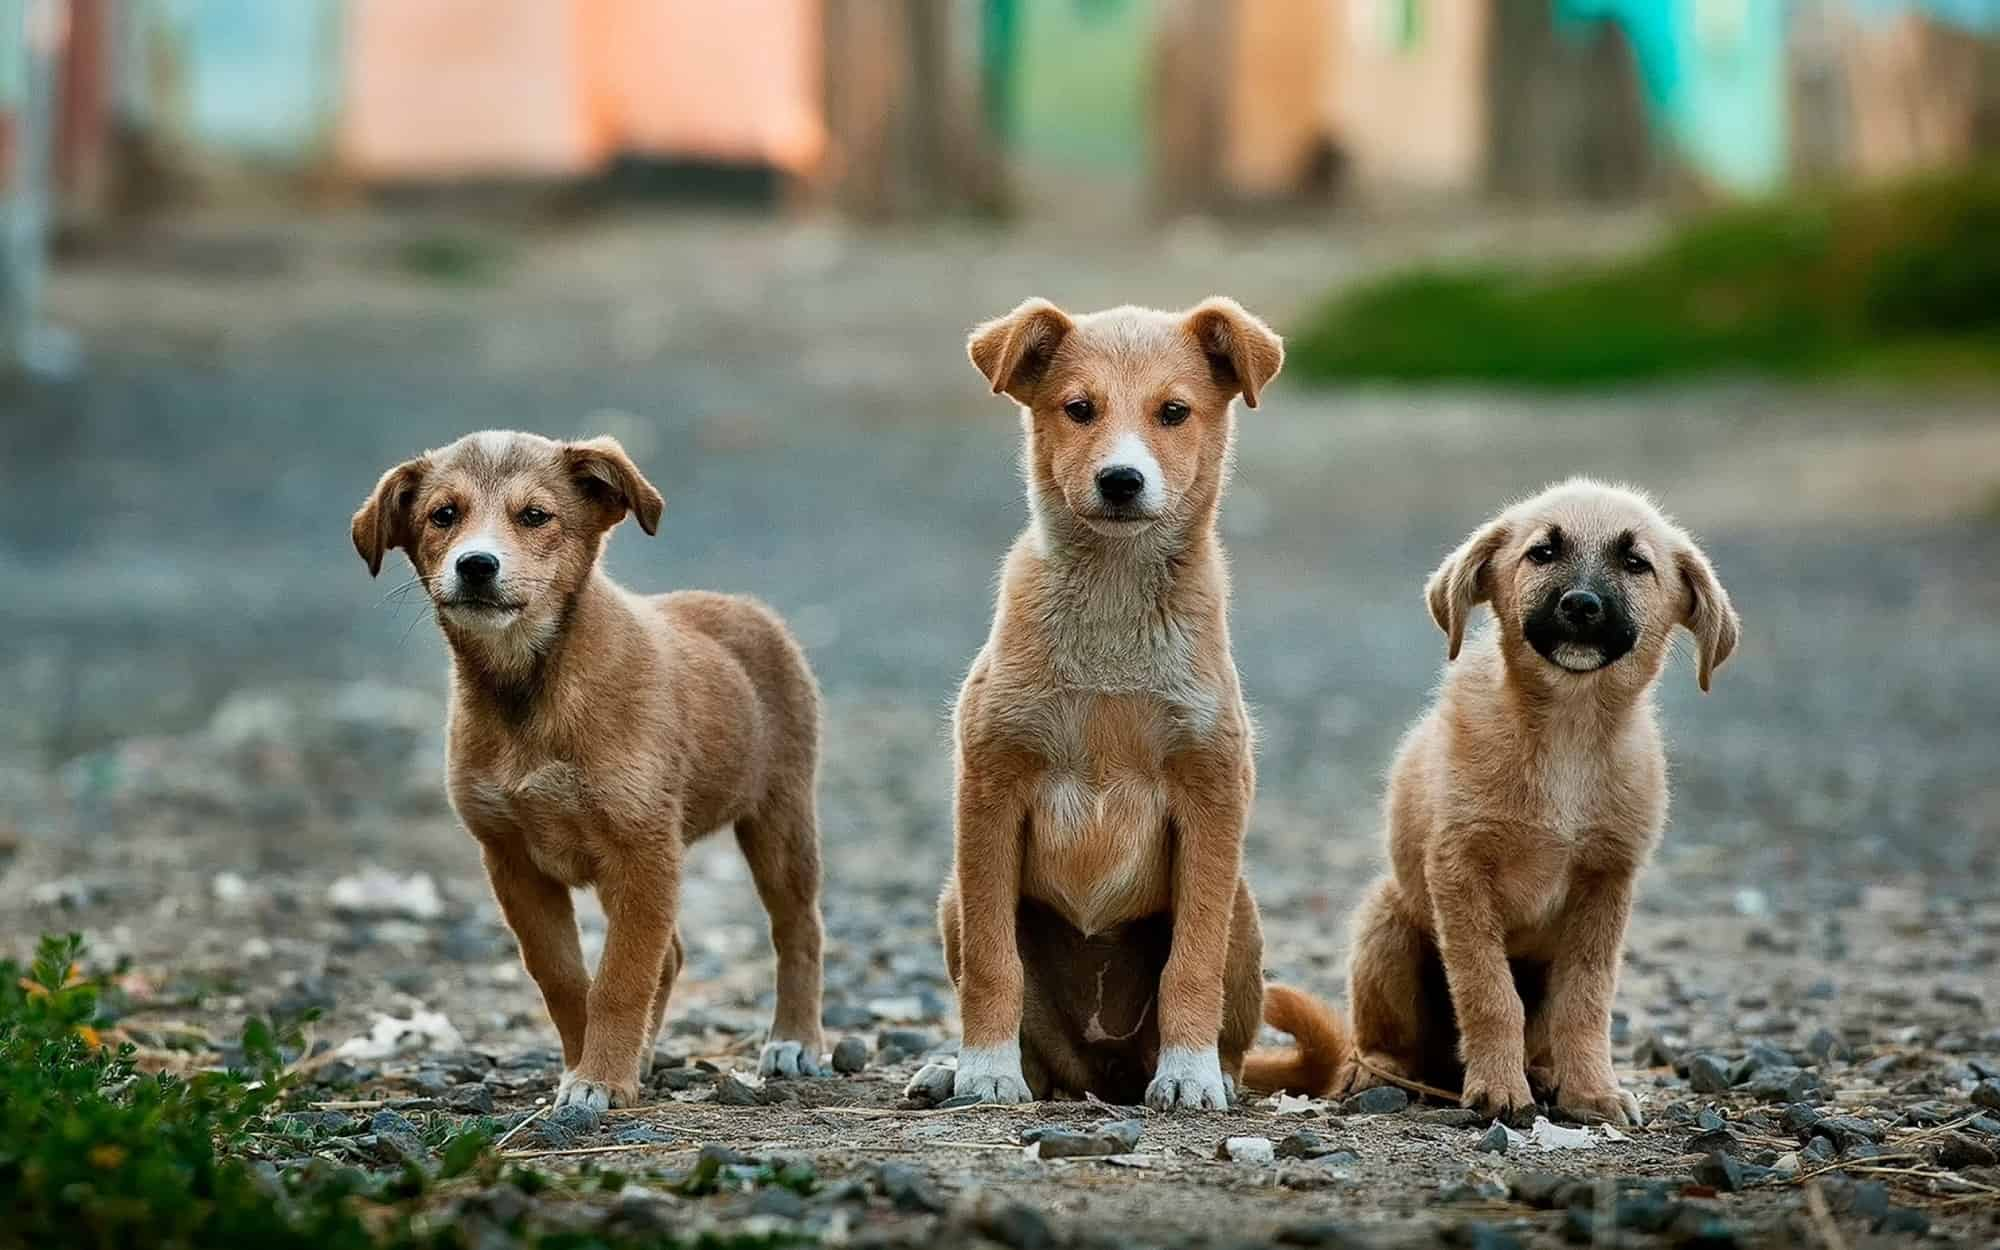 Three dogs sitting together